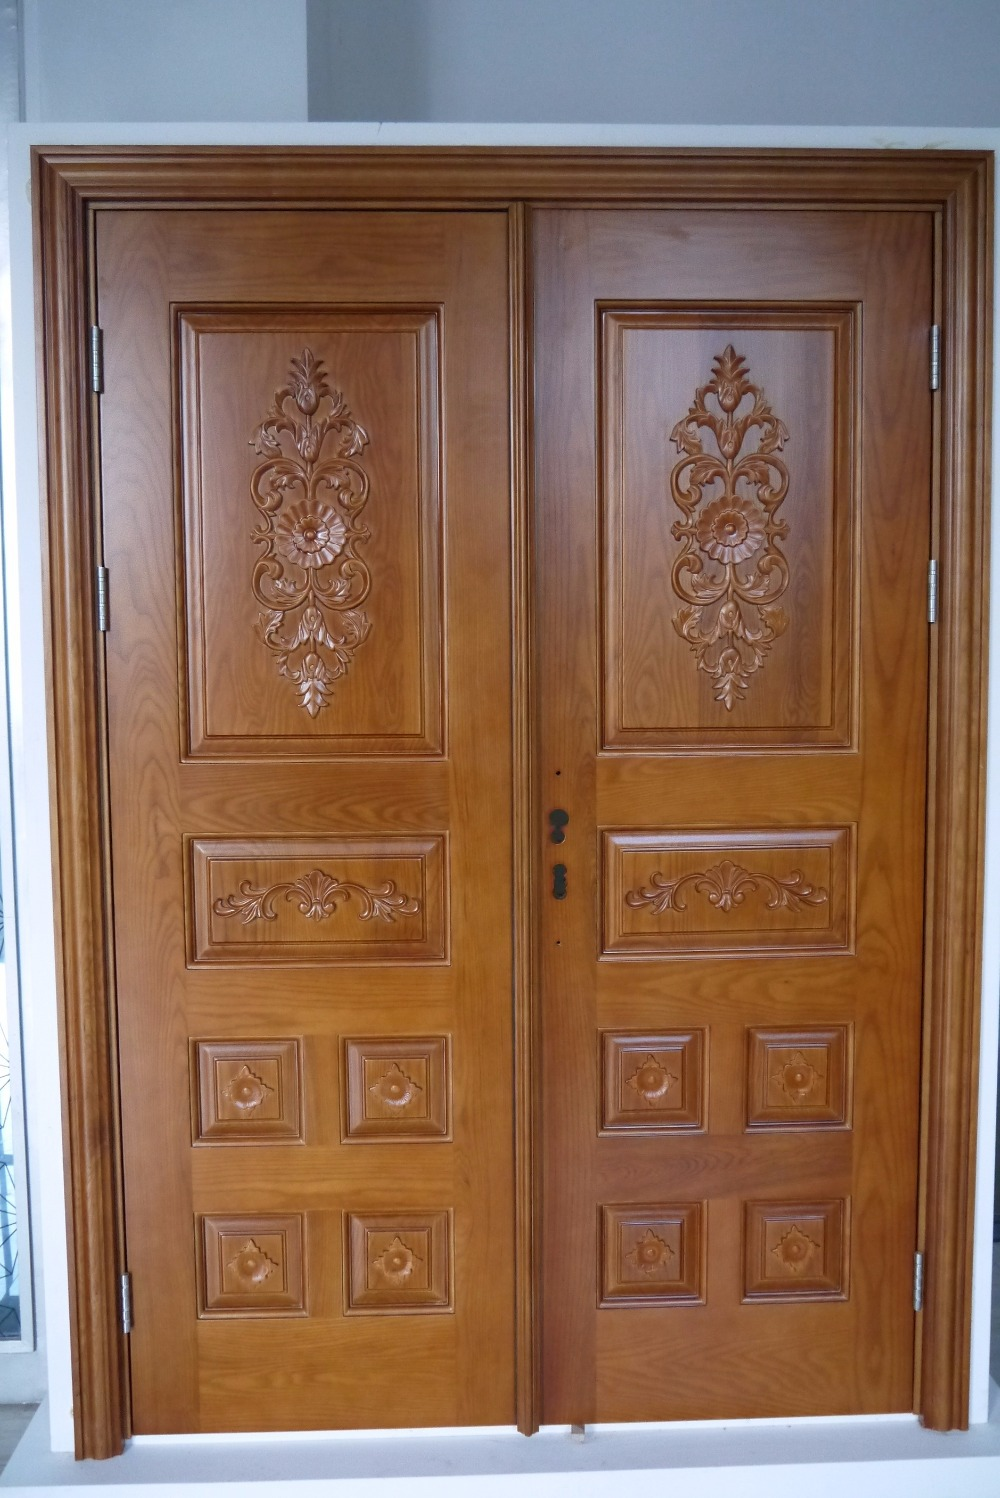 Prehung exterior double door 96 wood mahogany 2 panel for Double door designs for home